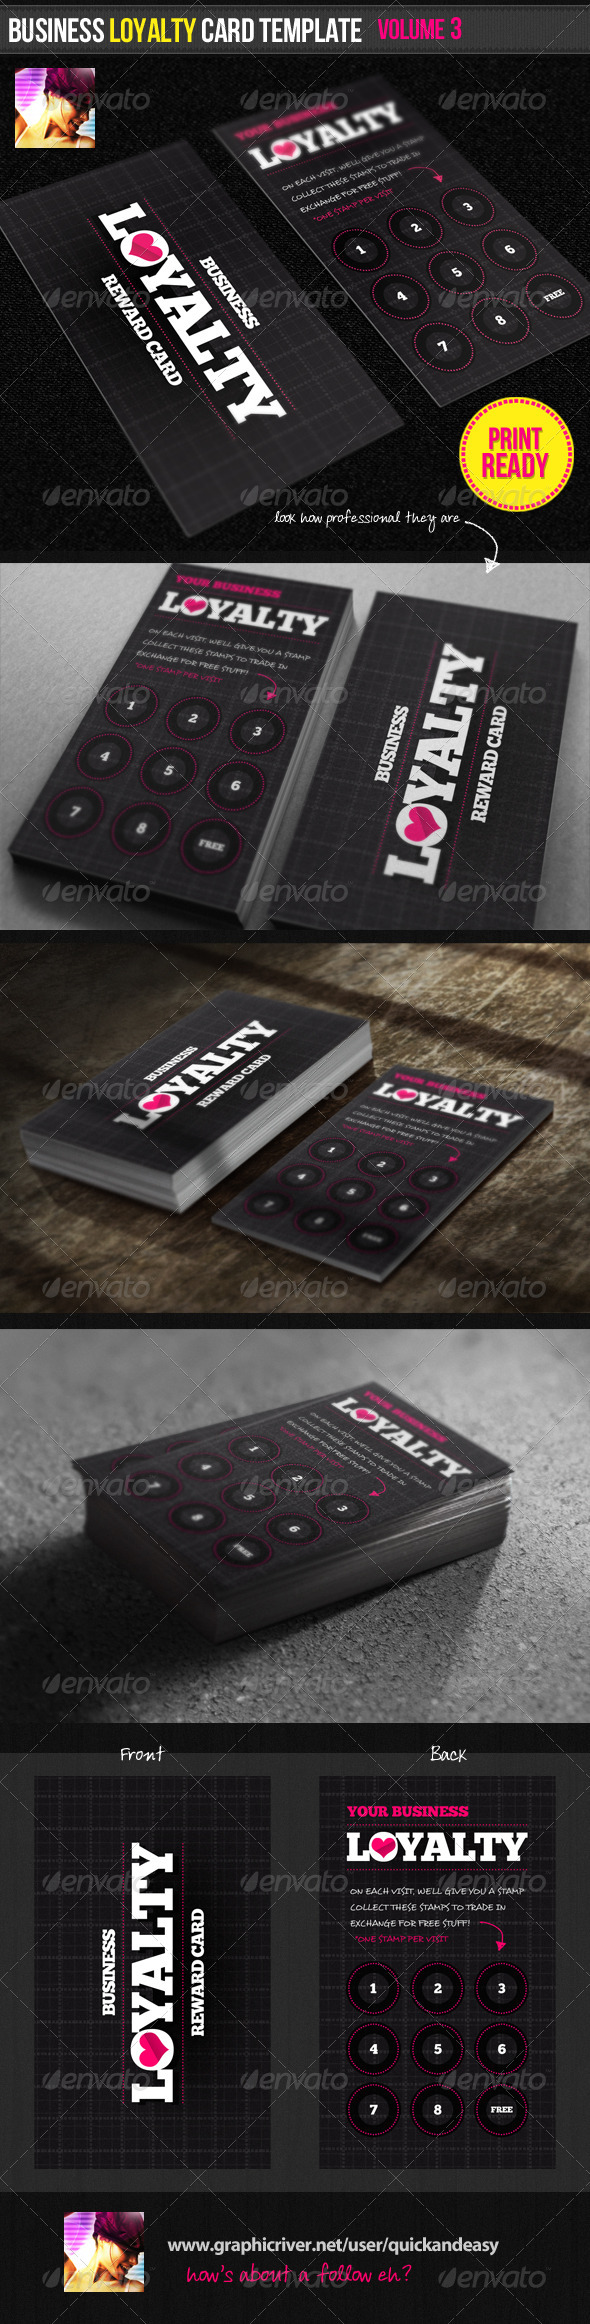 Business Loyalty Card Template Vol By Quickandeasy GraphicRiver - Business loyalty card template